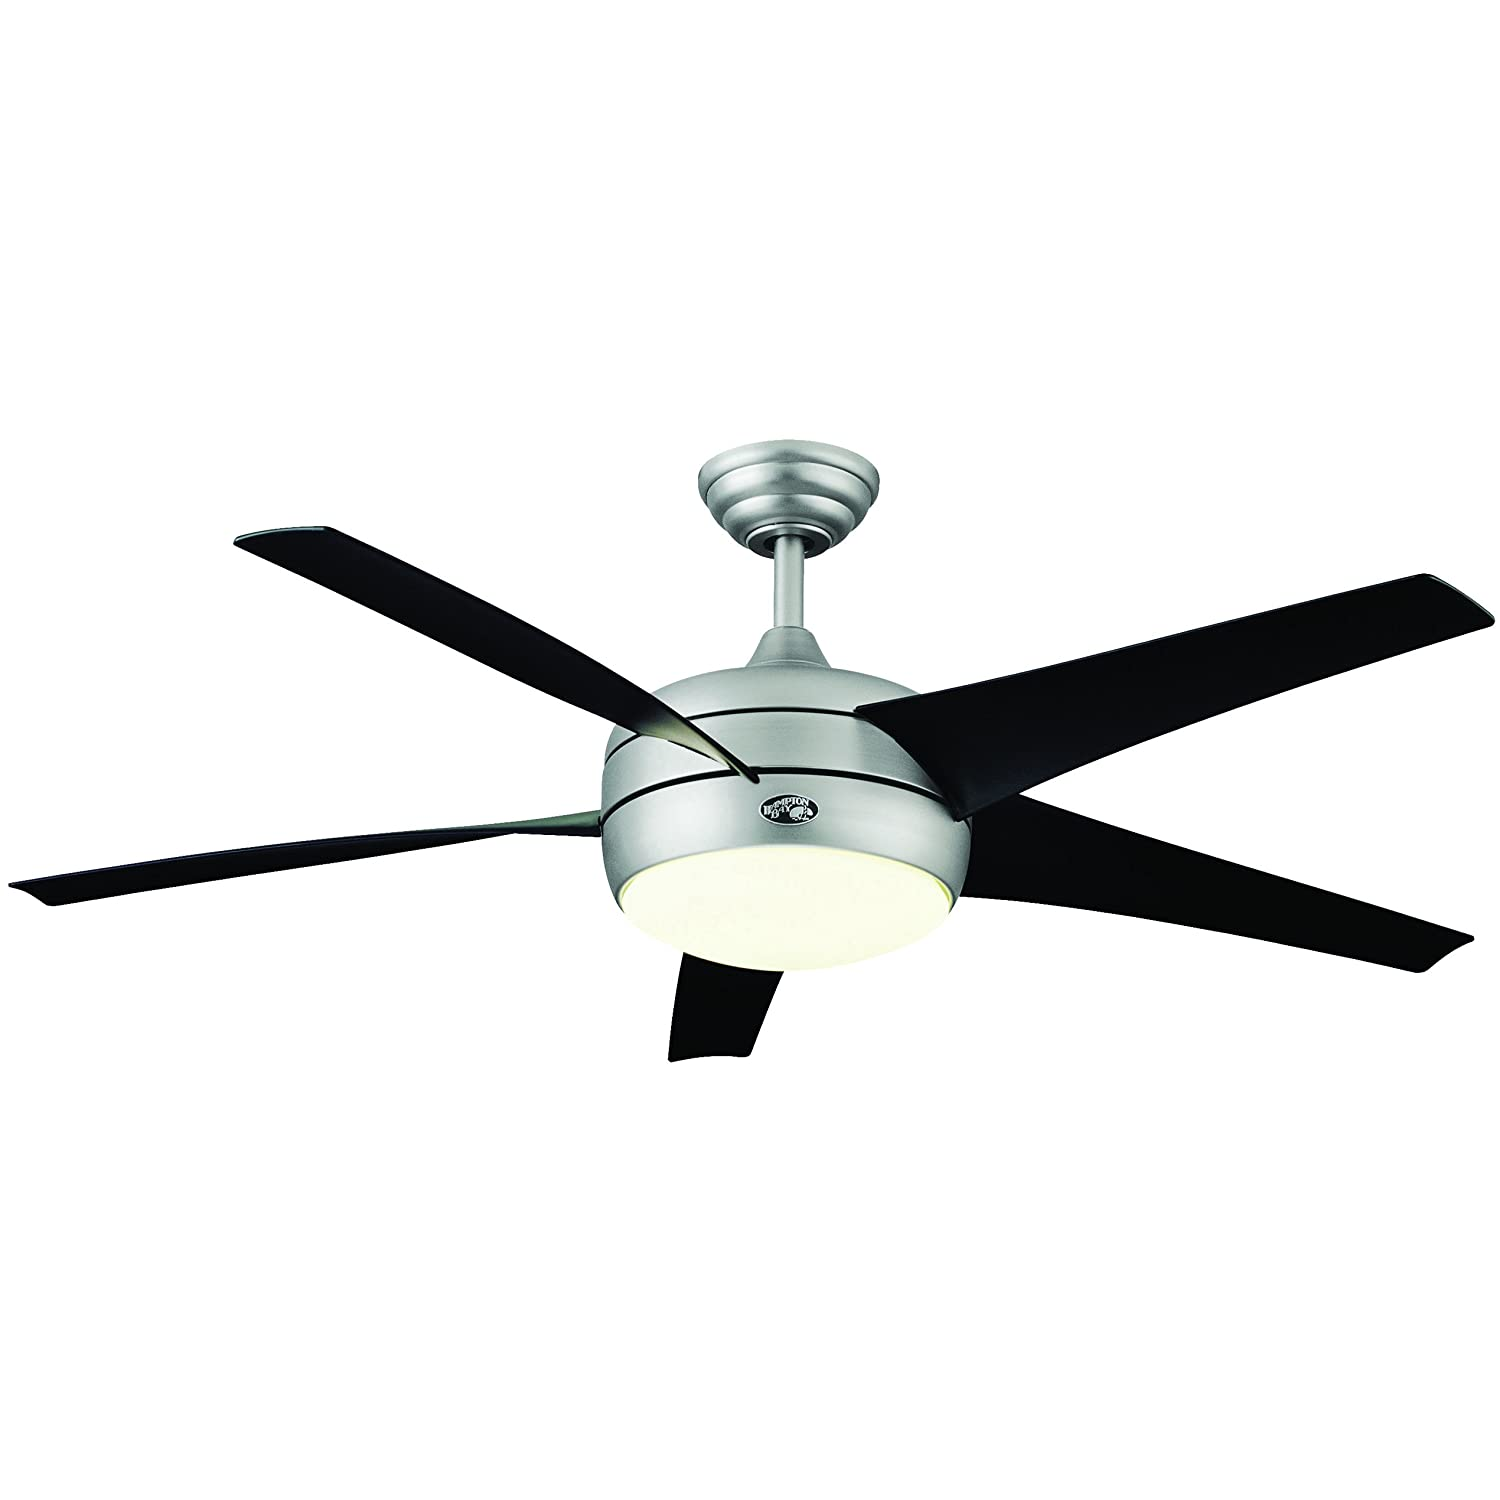 Hampton Bay 54 In. Windward II Brushed Steel Ceiling Fan, Single ...